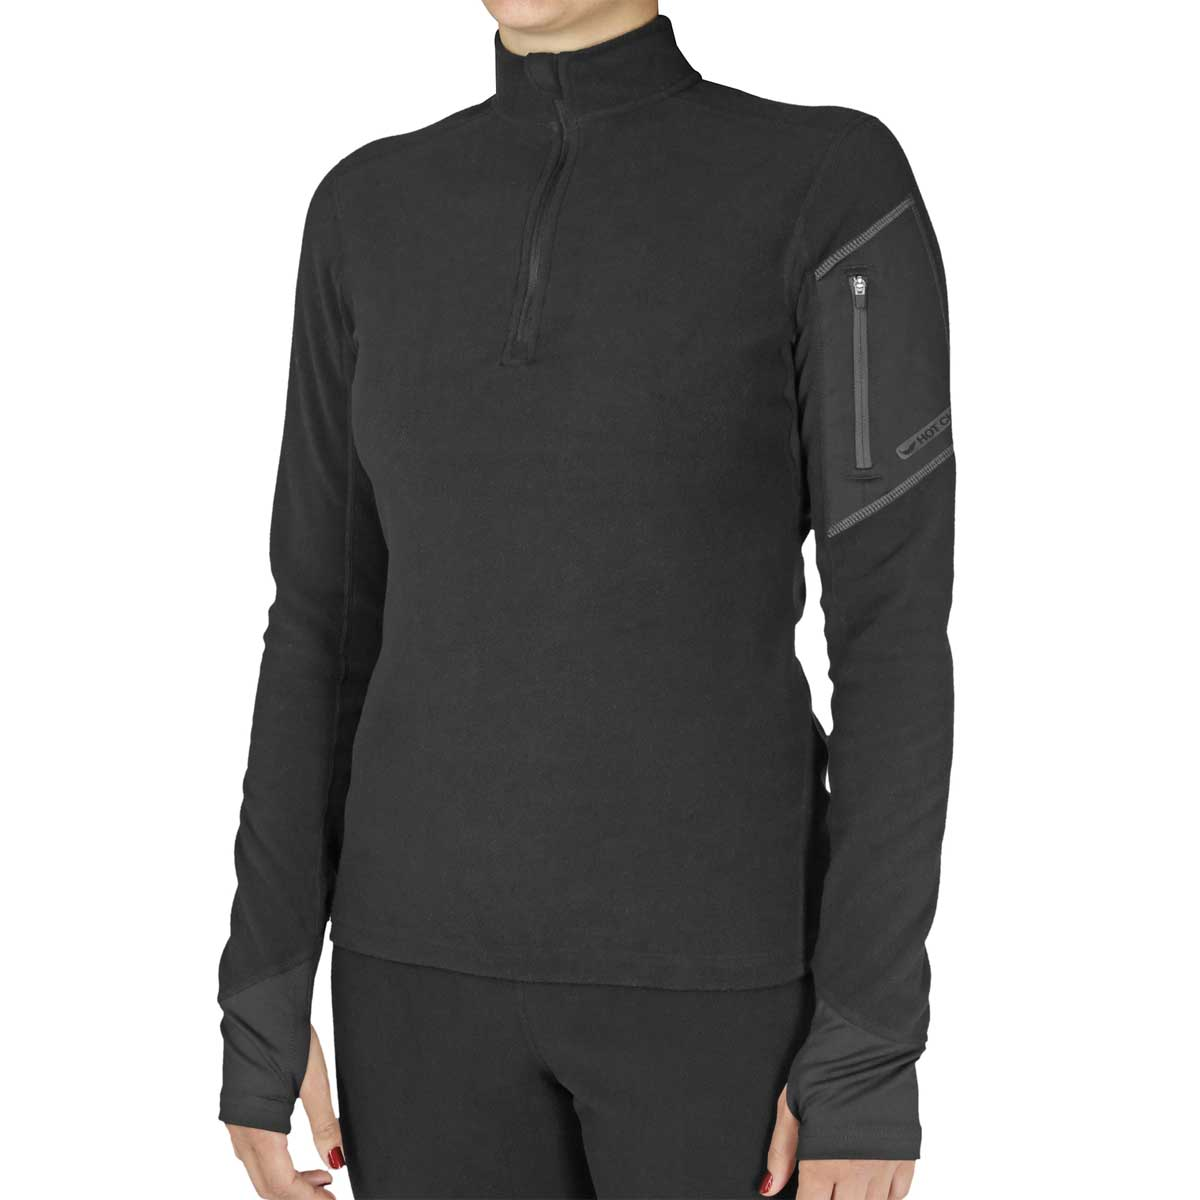 Hot Chillys Women's La Montana Zip-T in Black